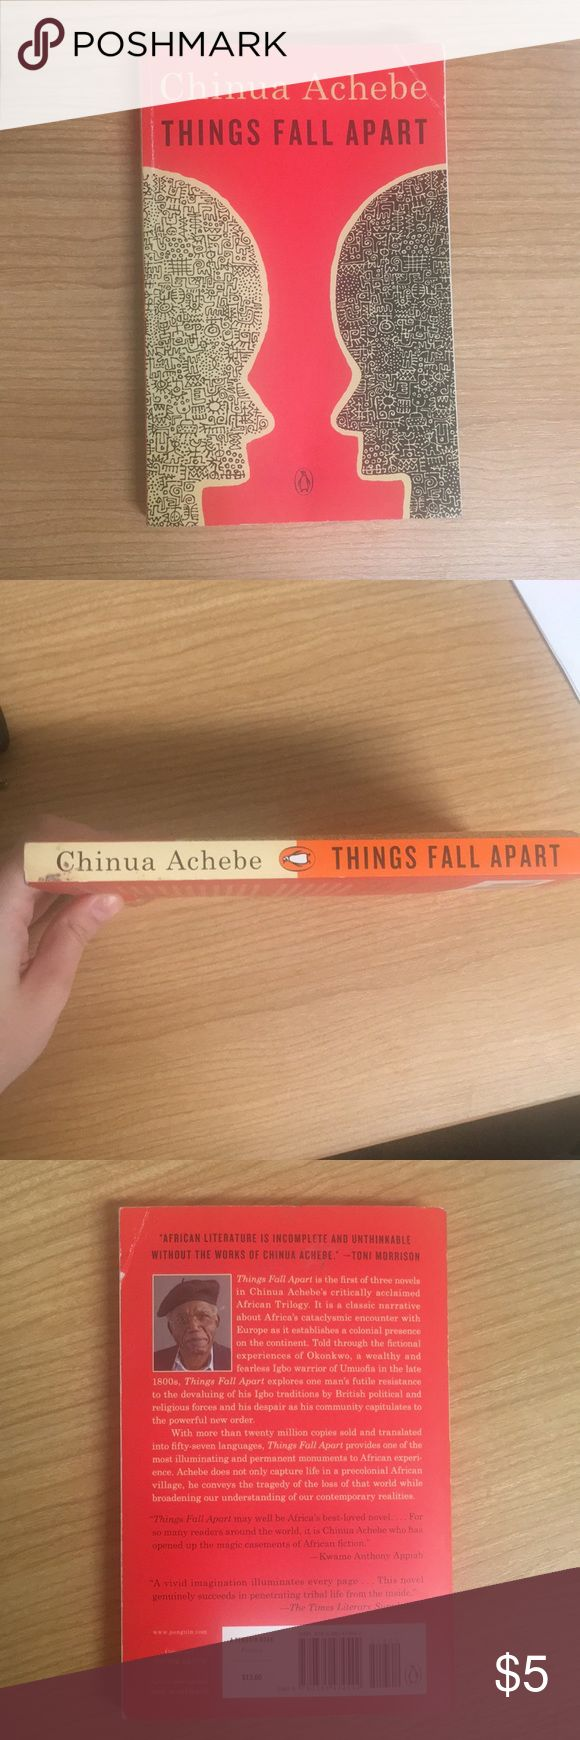 a book report on things fall apart by chinua achebe Get this from a library things fall apart [chinua achebe] -- first published in 1958, this novel tells the story of okonkwo, the leader of an igbo (ibo) community who is banished for accidentally killing a clansman.